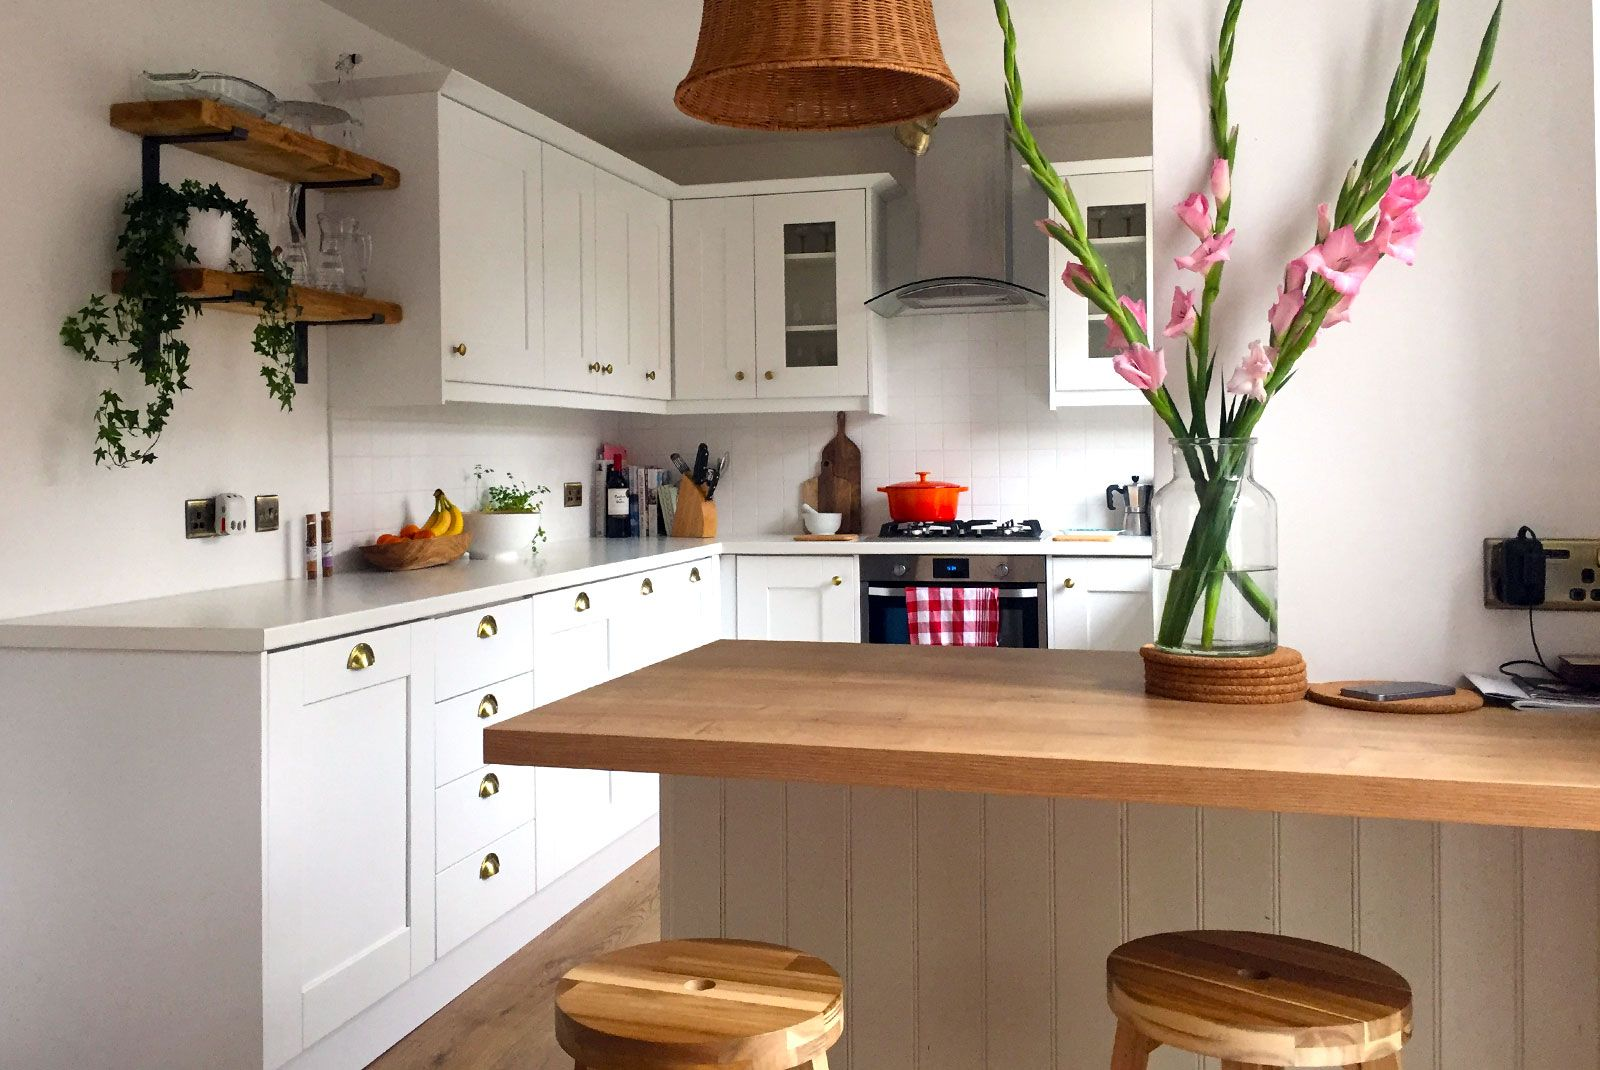 Pin On Real Kitchens Real Designers